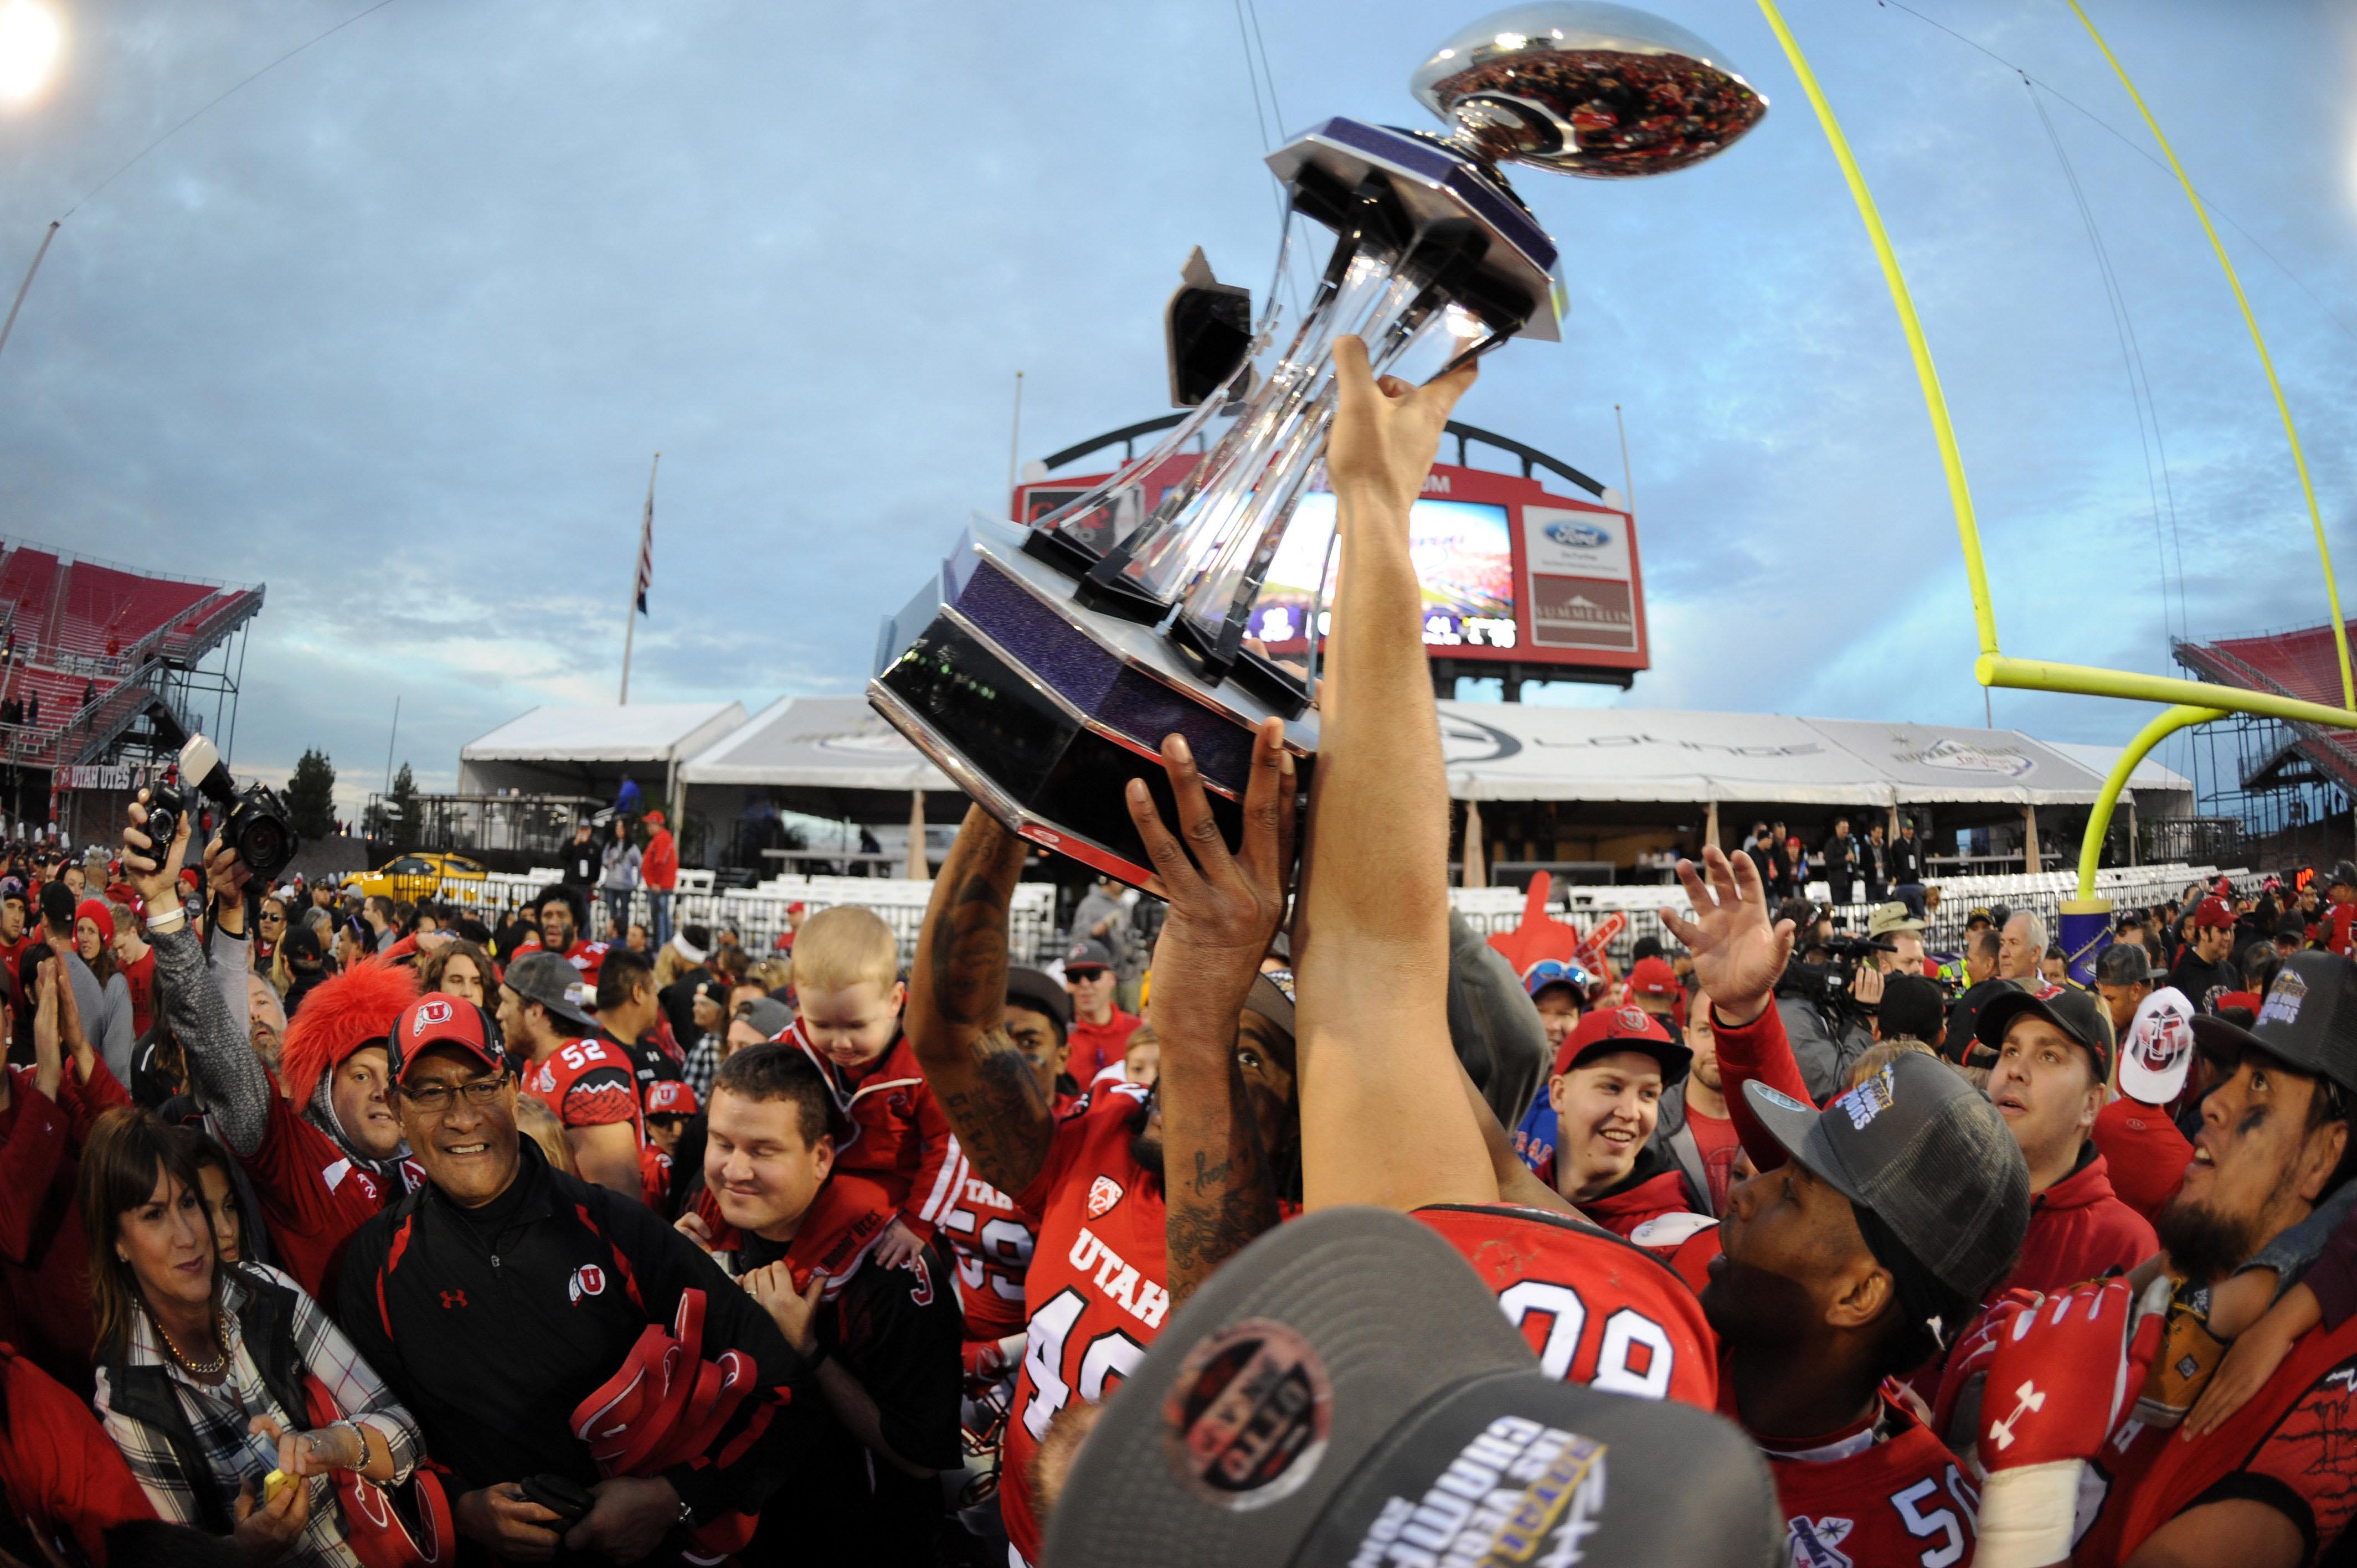 Utah captures it's 14th bowl title with the 45-10 route of Colorado State in the 2014 Royal Purple Las Vegas Bowl.